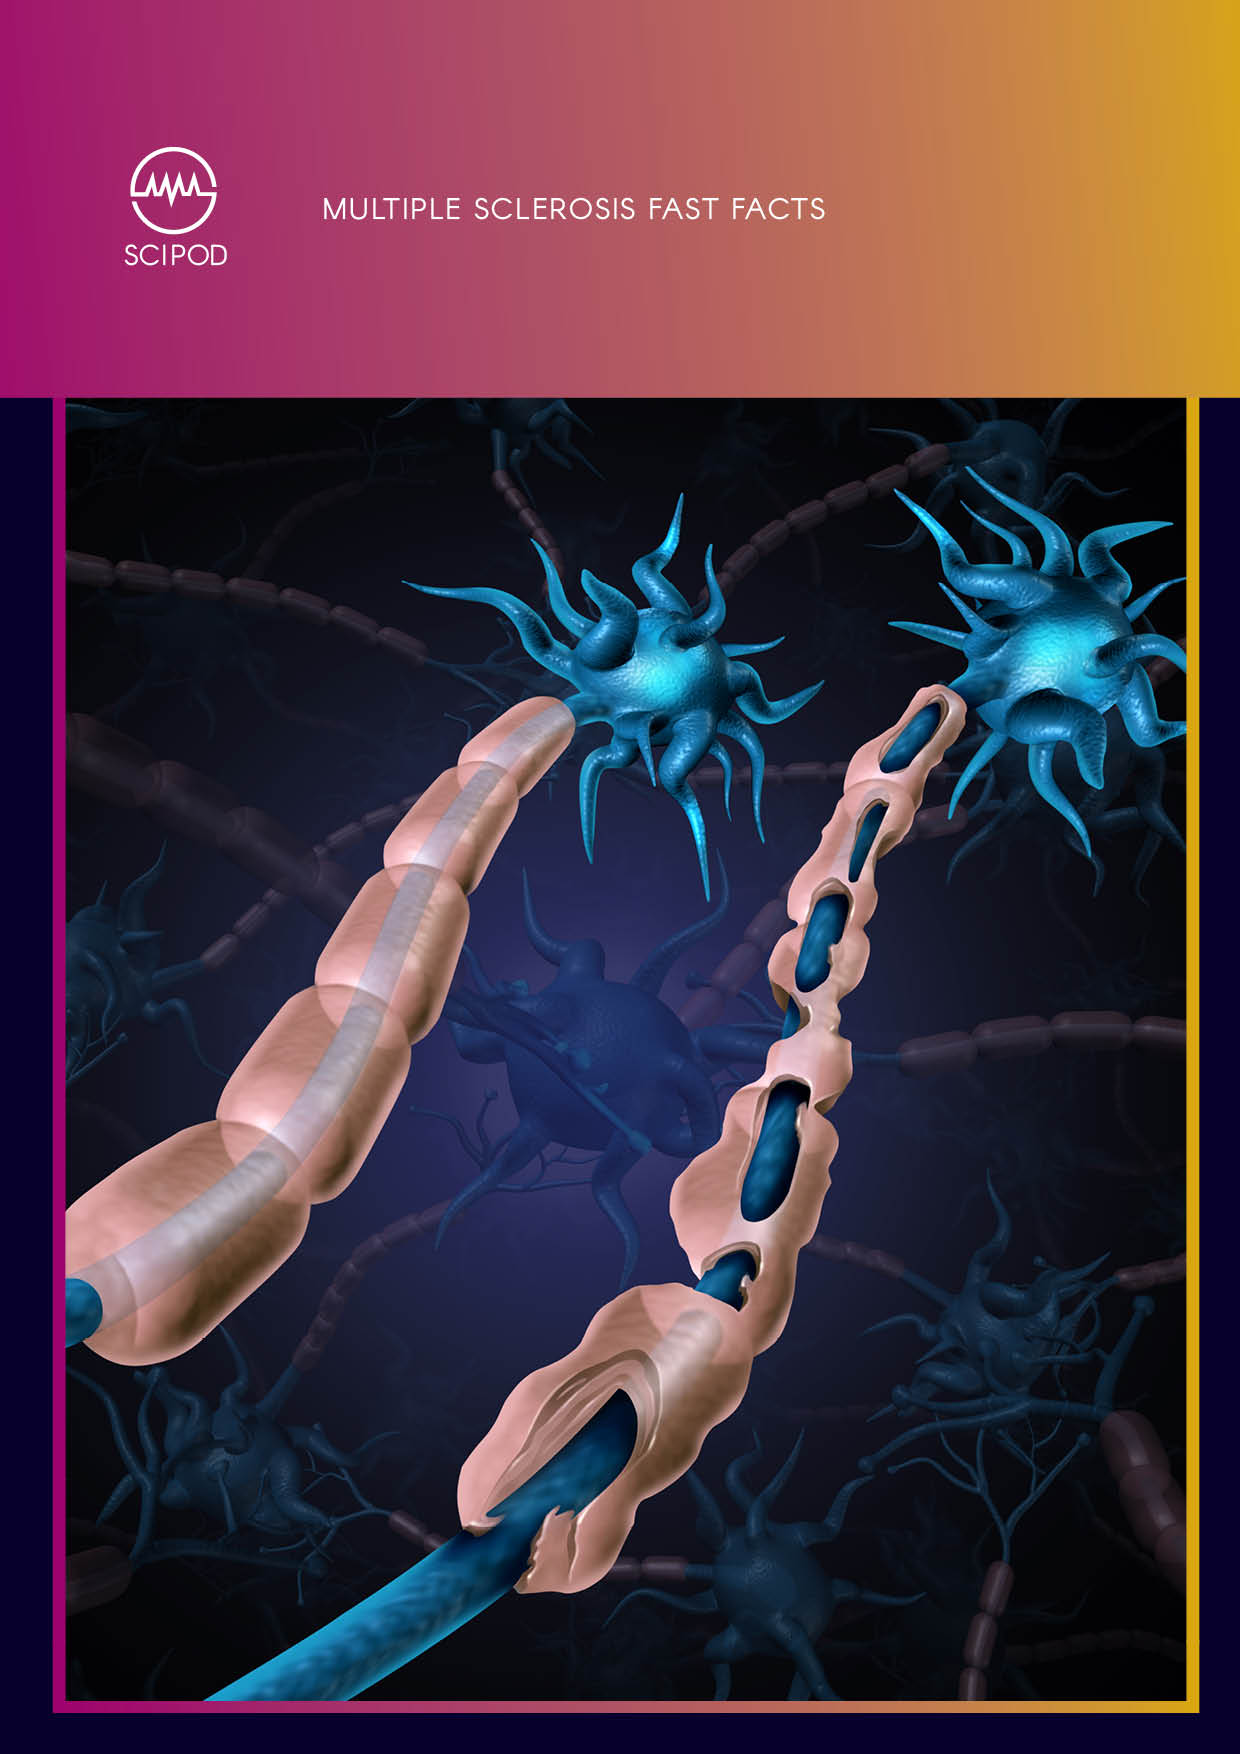 Multiple Sclerosis Fast Facts